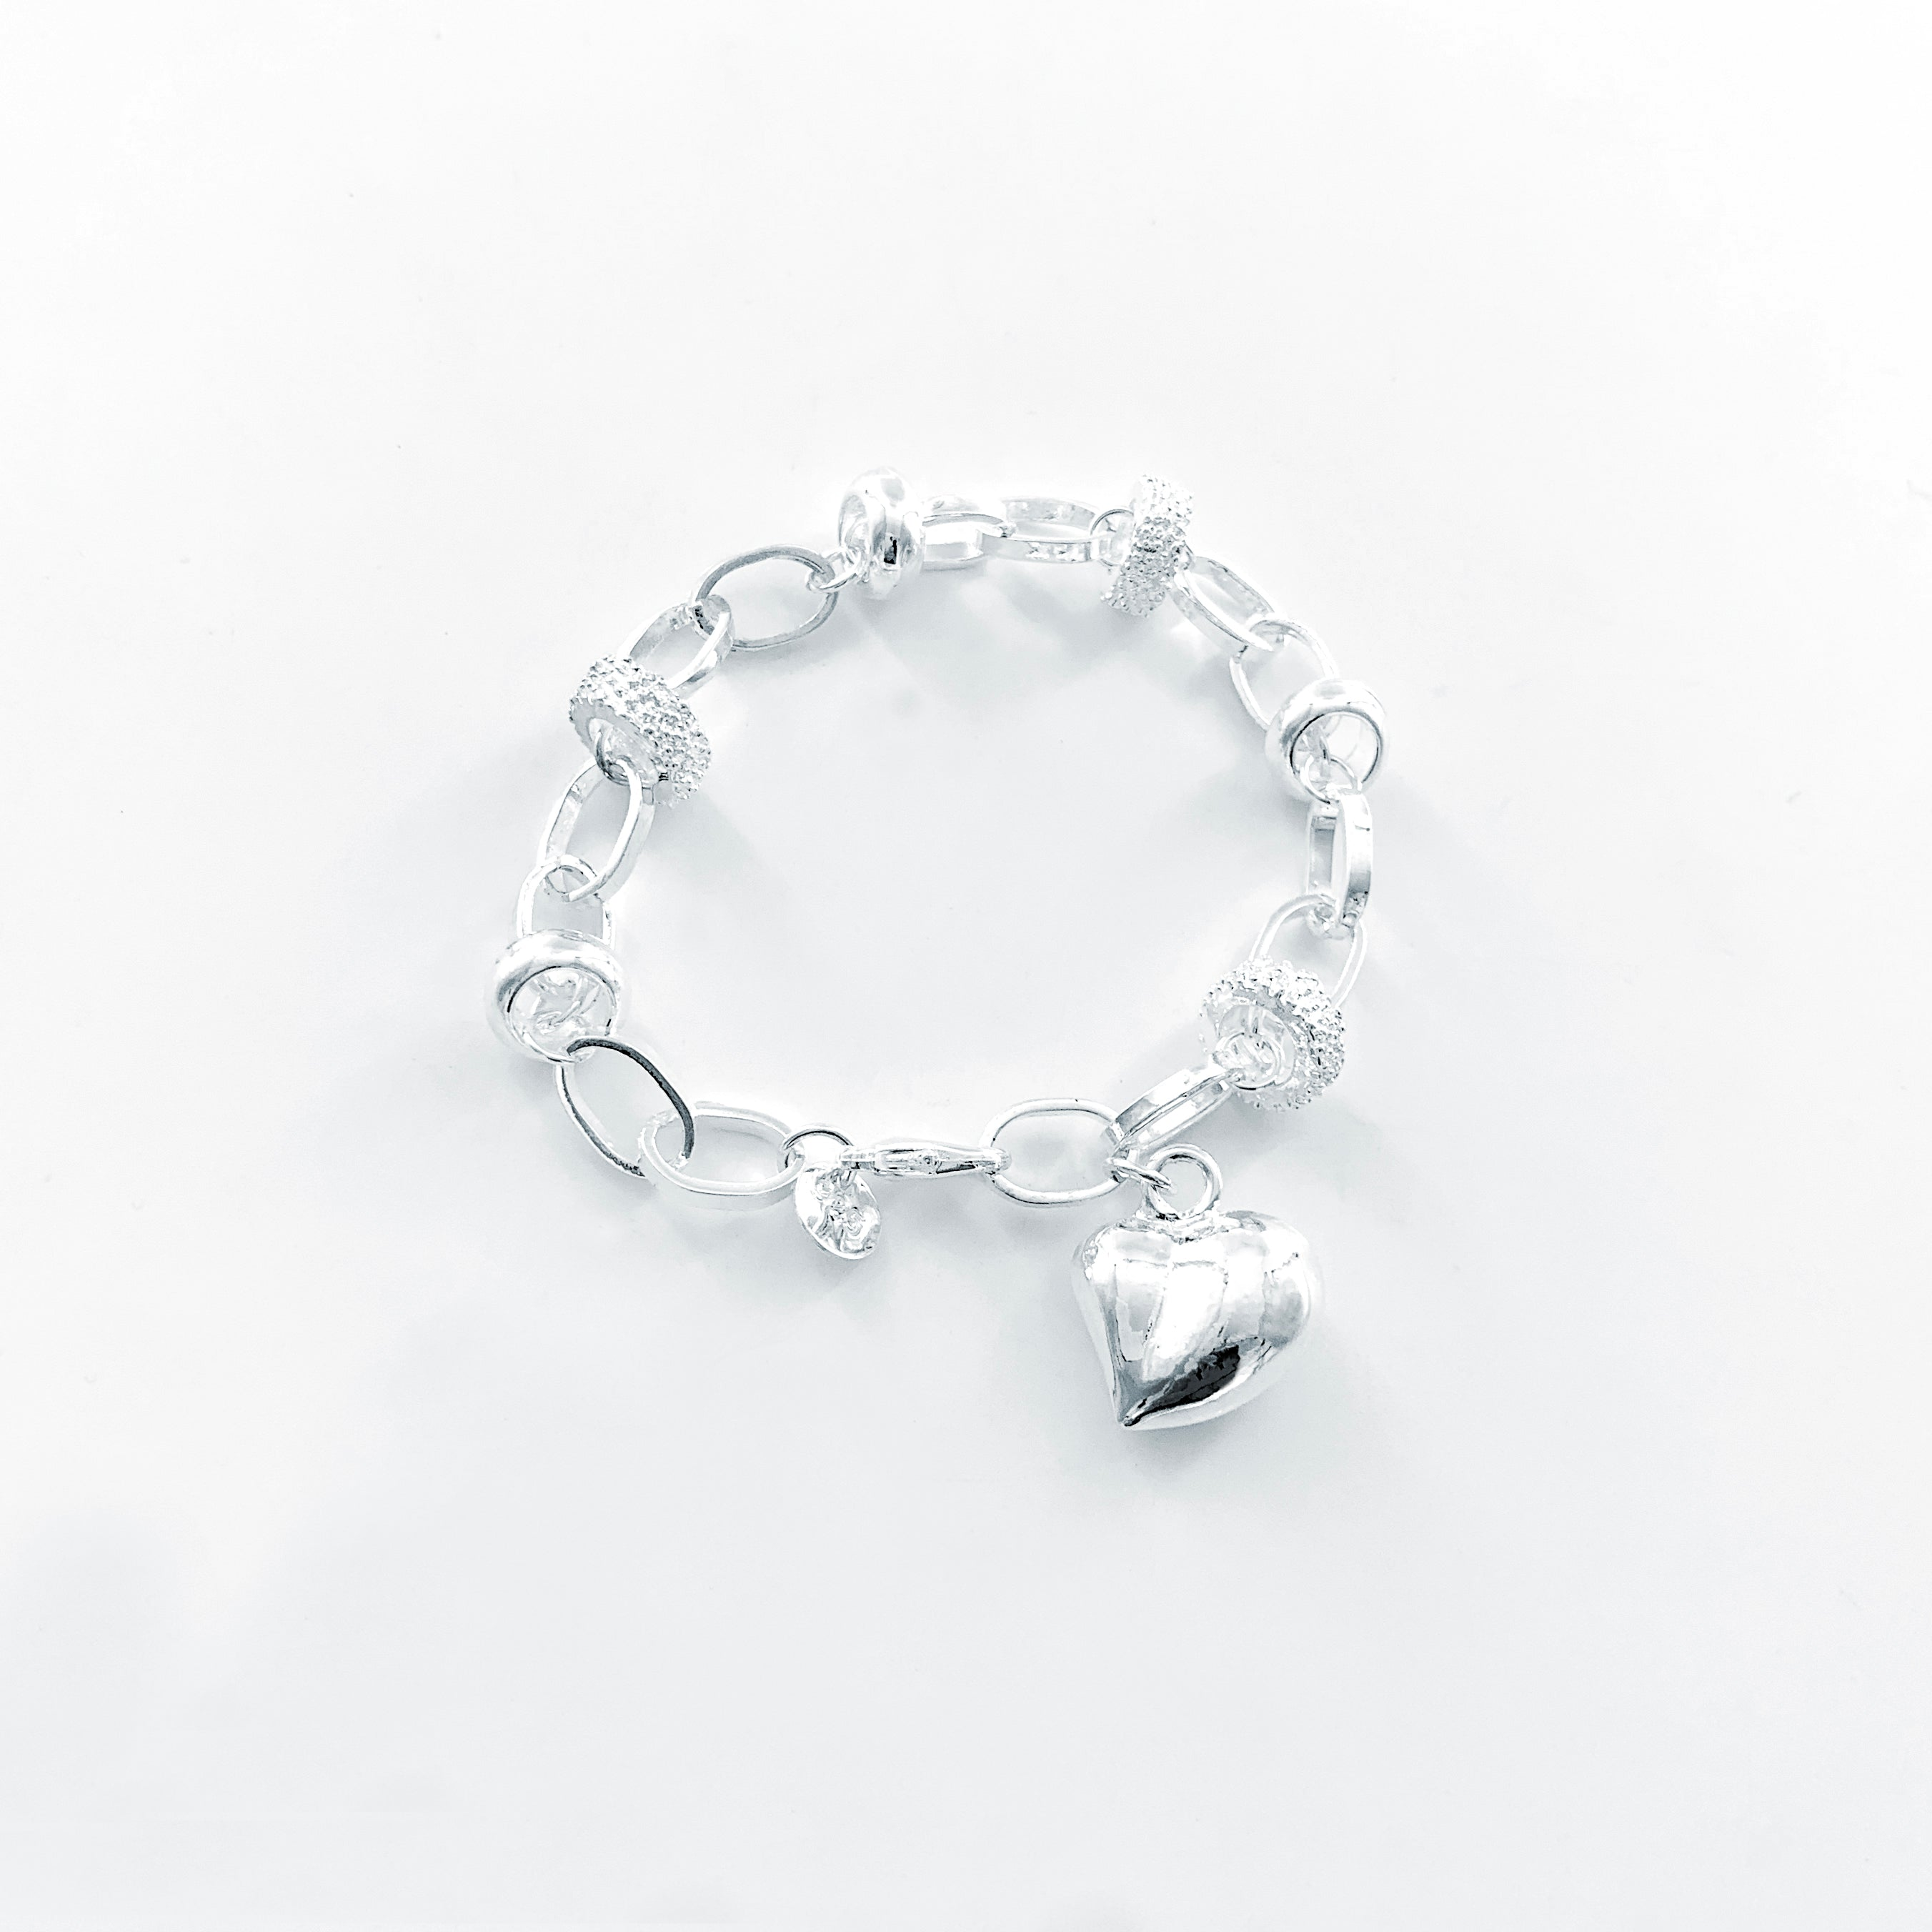 Silver Heart pendant with Diamante accented Chain Bracelet